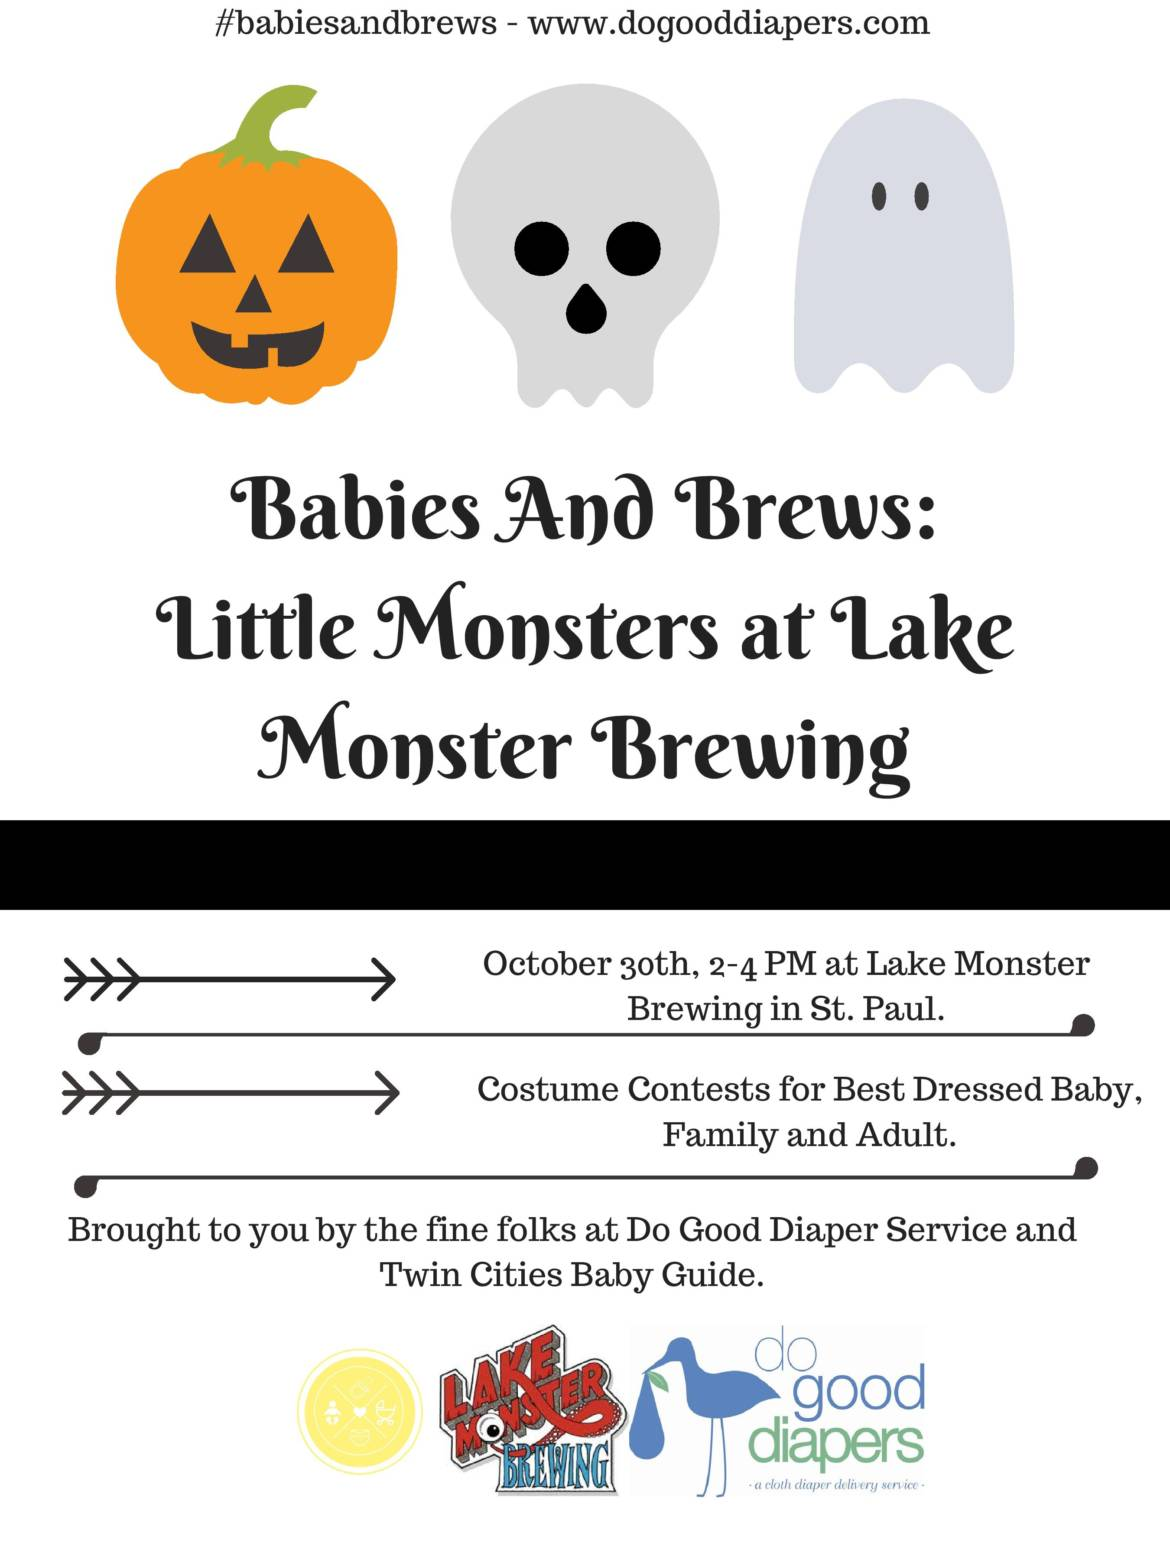 Babies-And-Brews_-Little-Monsters-at-Lake-Monster-Brewing5-page-001.jpg